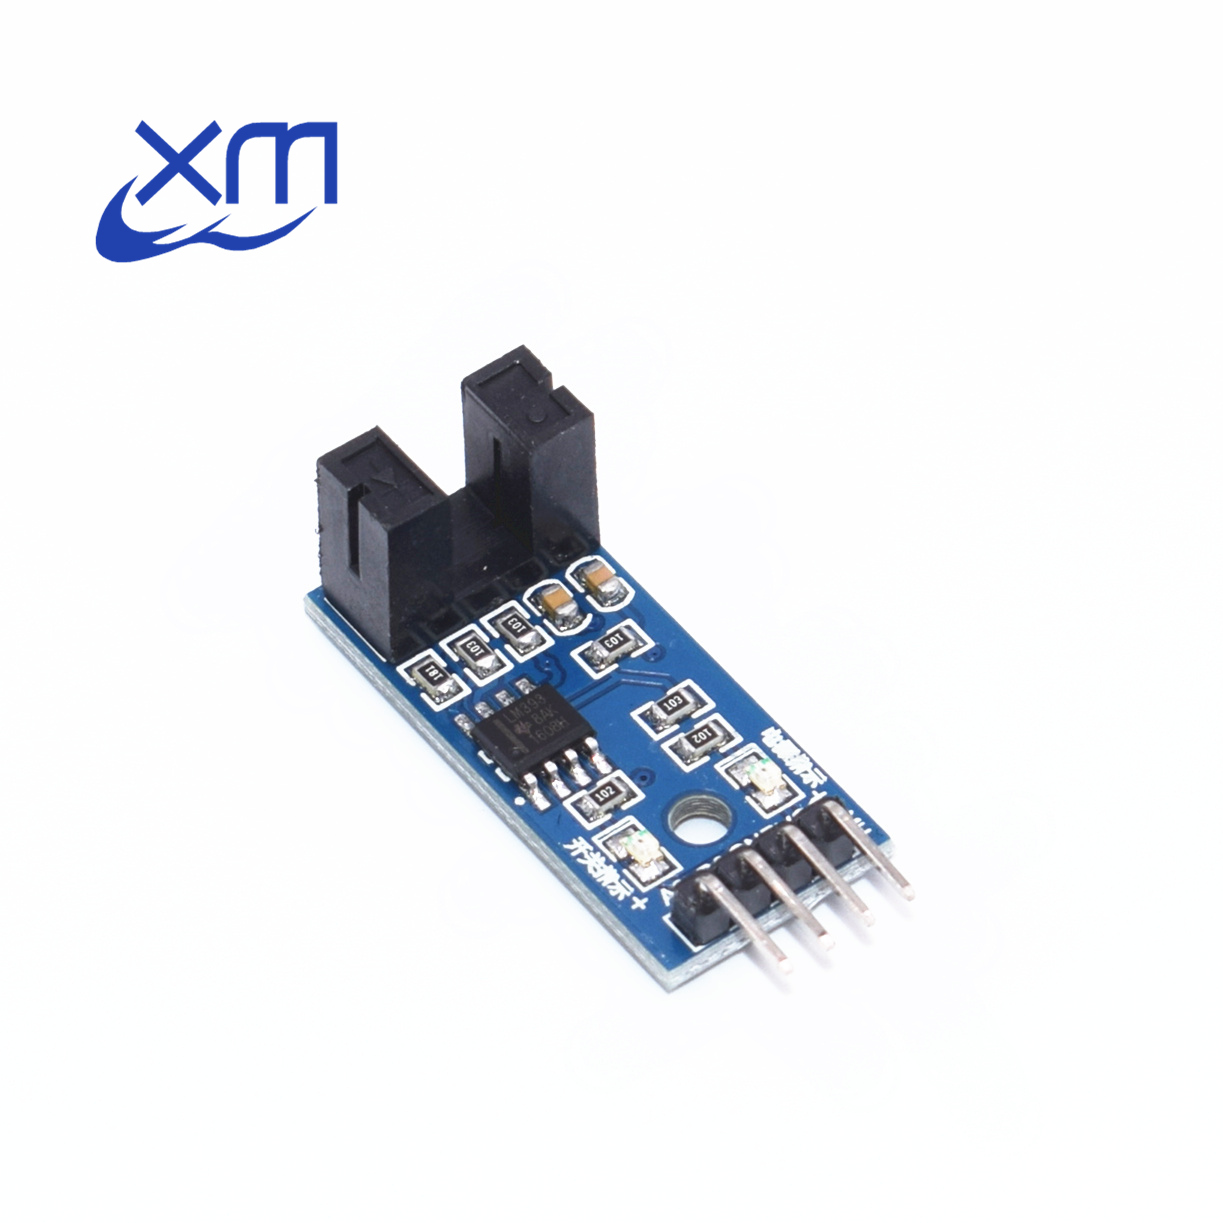 1pcs IR Infrared Slotted Optical Speed Measuring Sensor Optocoupler Module For Motor Test I32